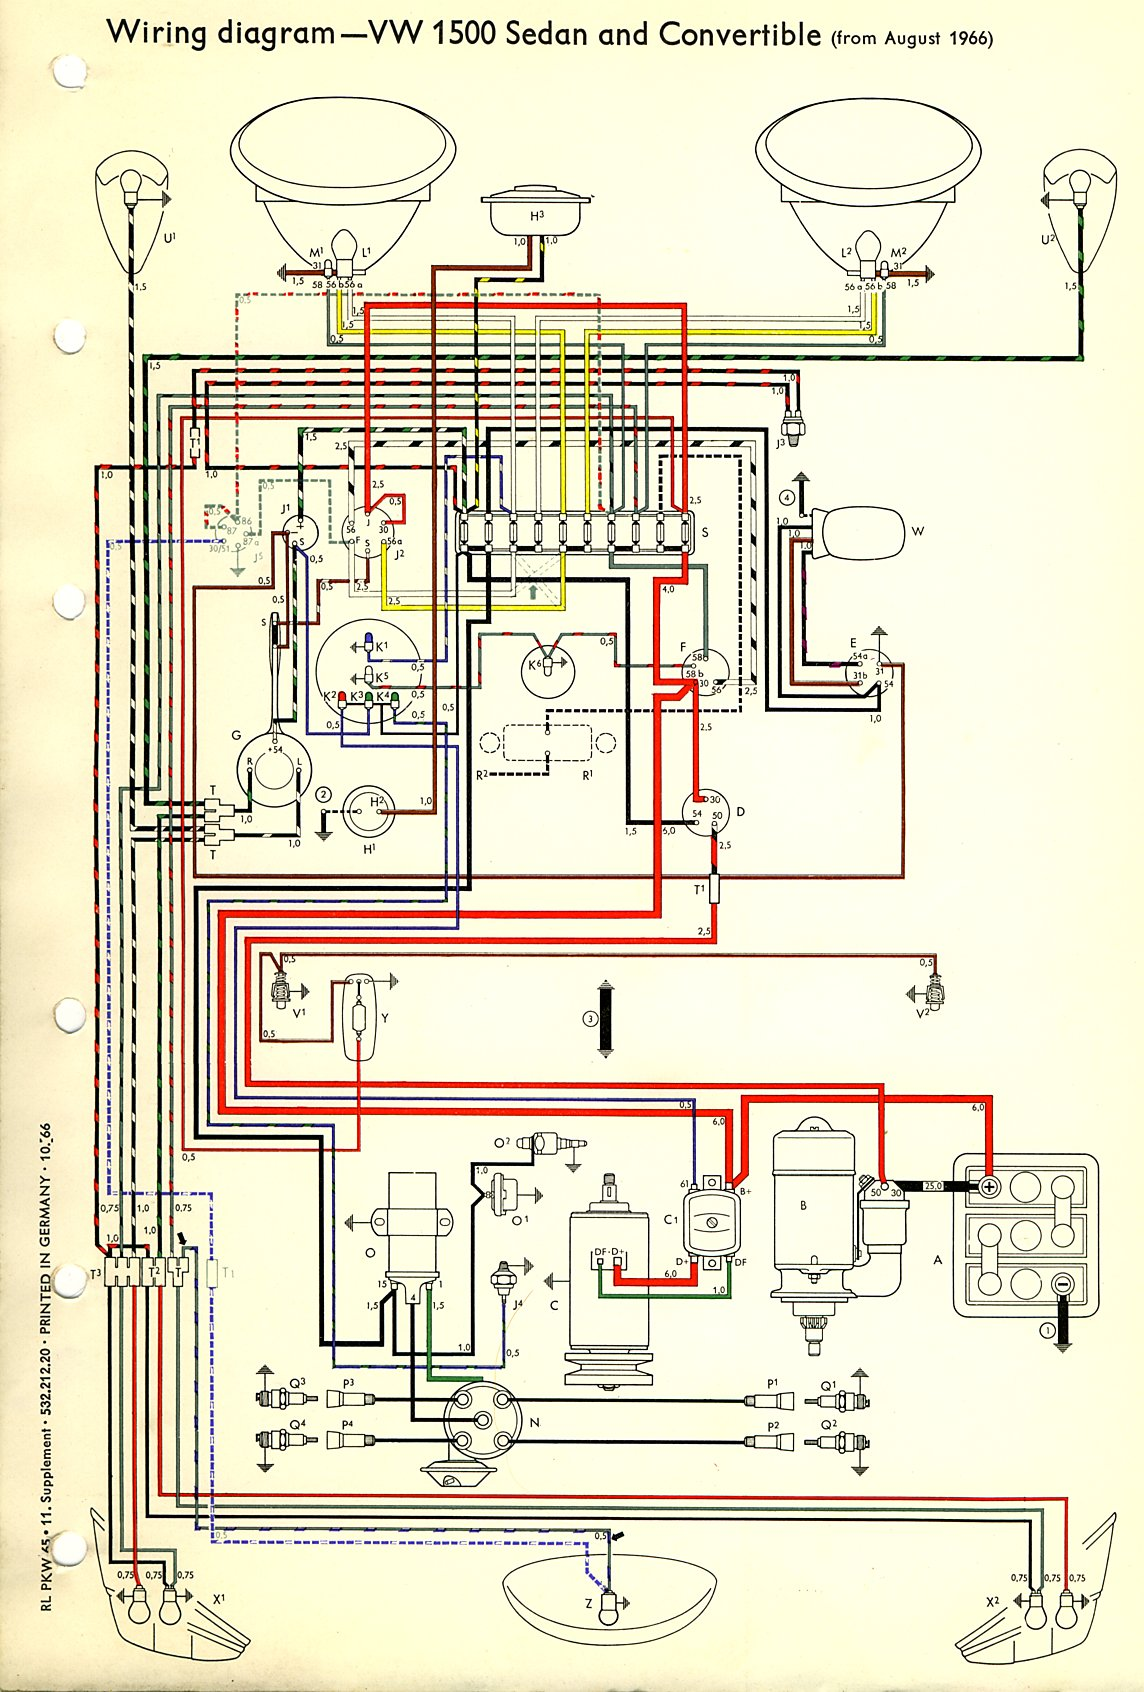 1974 Fiat Wiring Diagram Simple Electrical Uno Coil Auto Ford